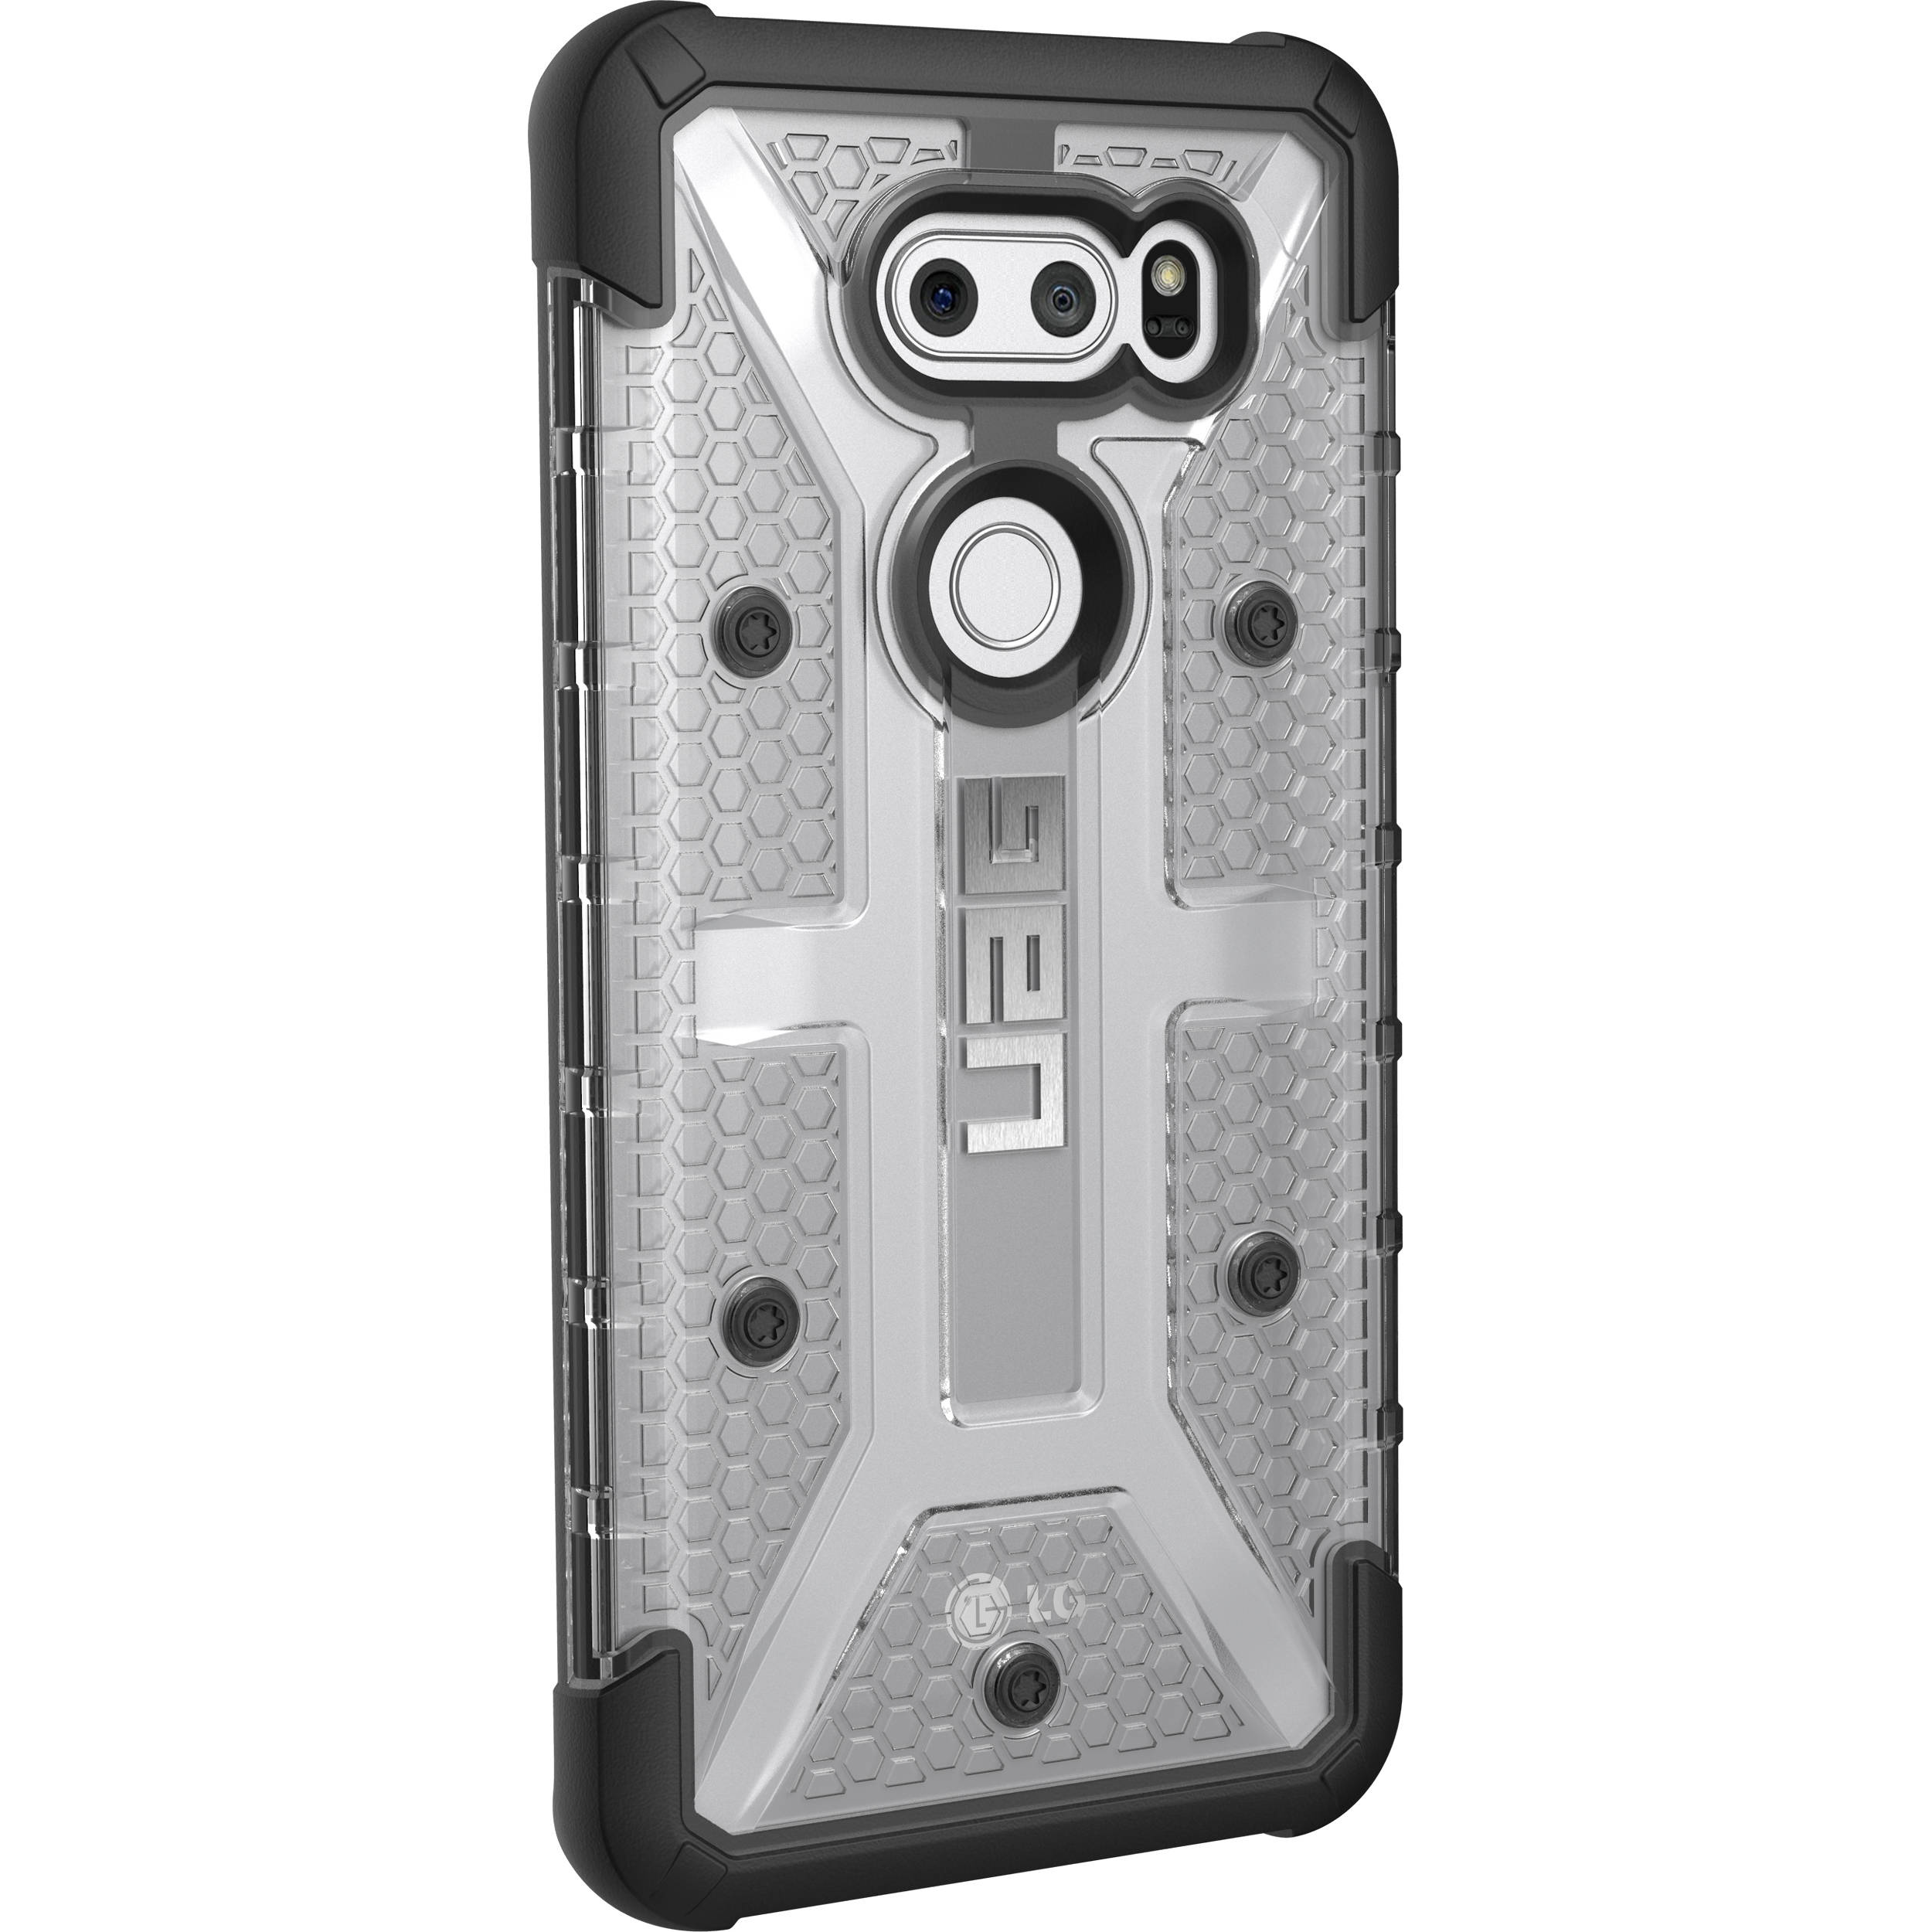 promo code 39ddc 3b3ad Urban Armor Gear Plasma Case for LG V30/V30+ (Ice)